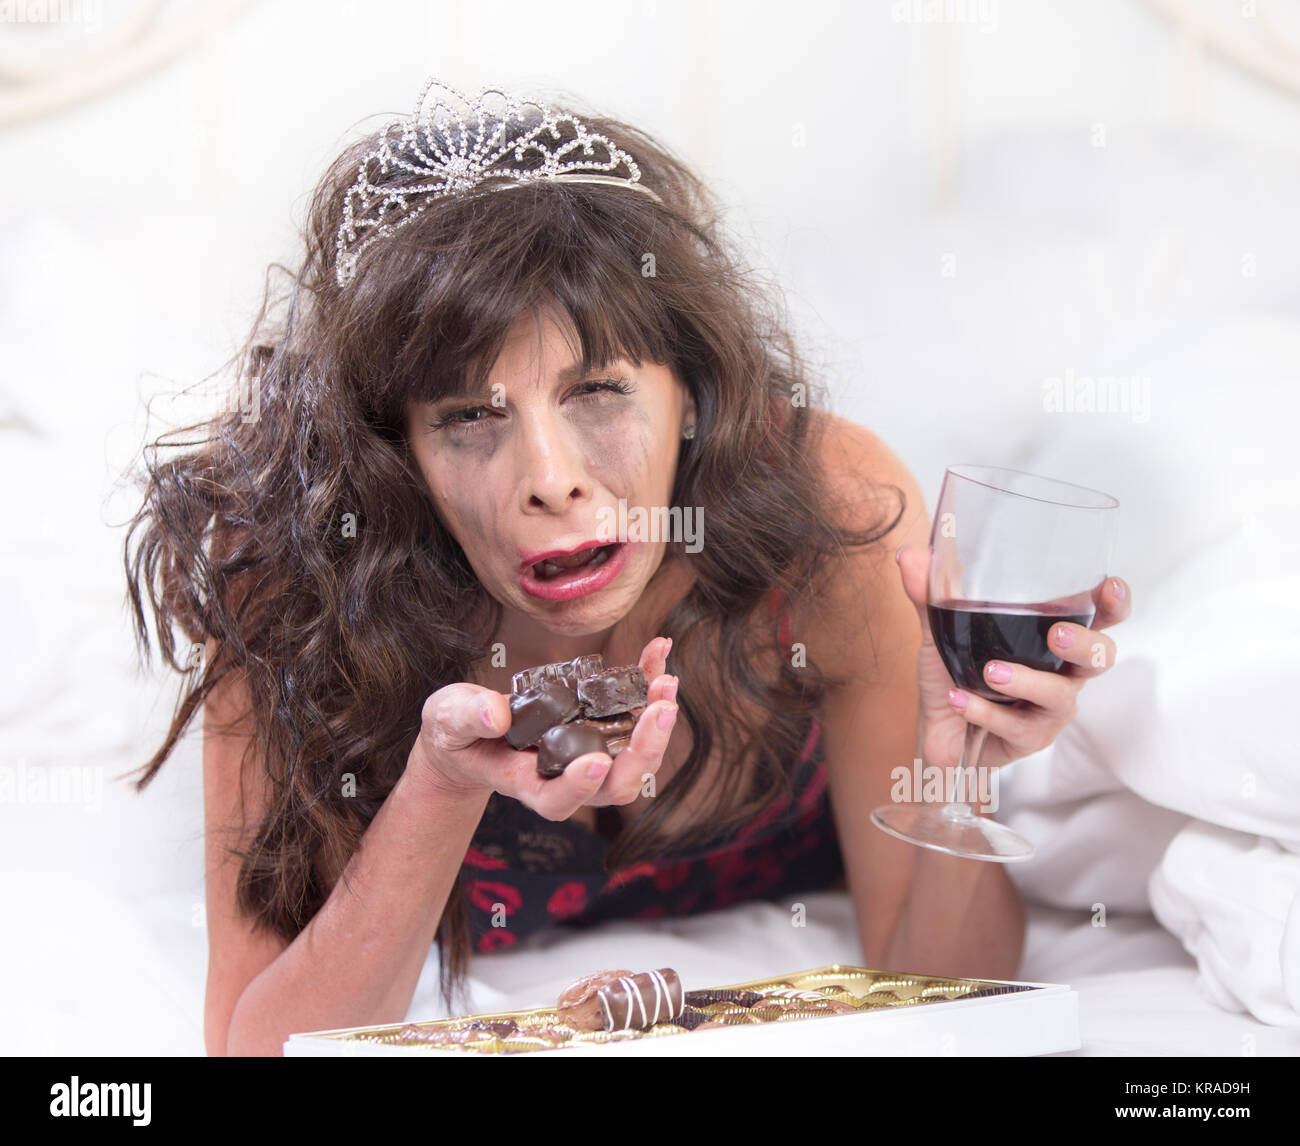 Sobbing Woman in Tiara Drinking Wine and Cramming Chocolates in Bedroom - Stock Image